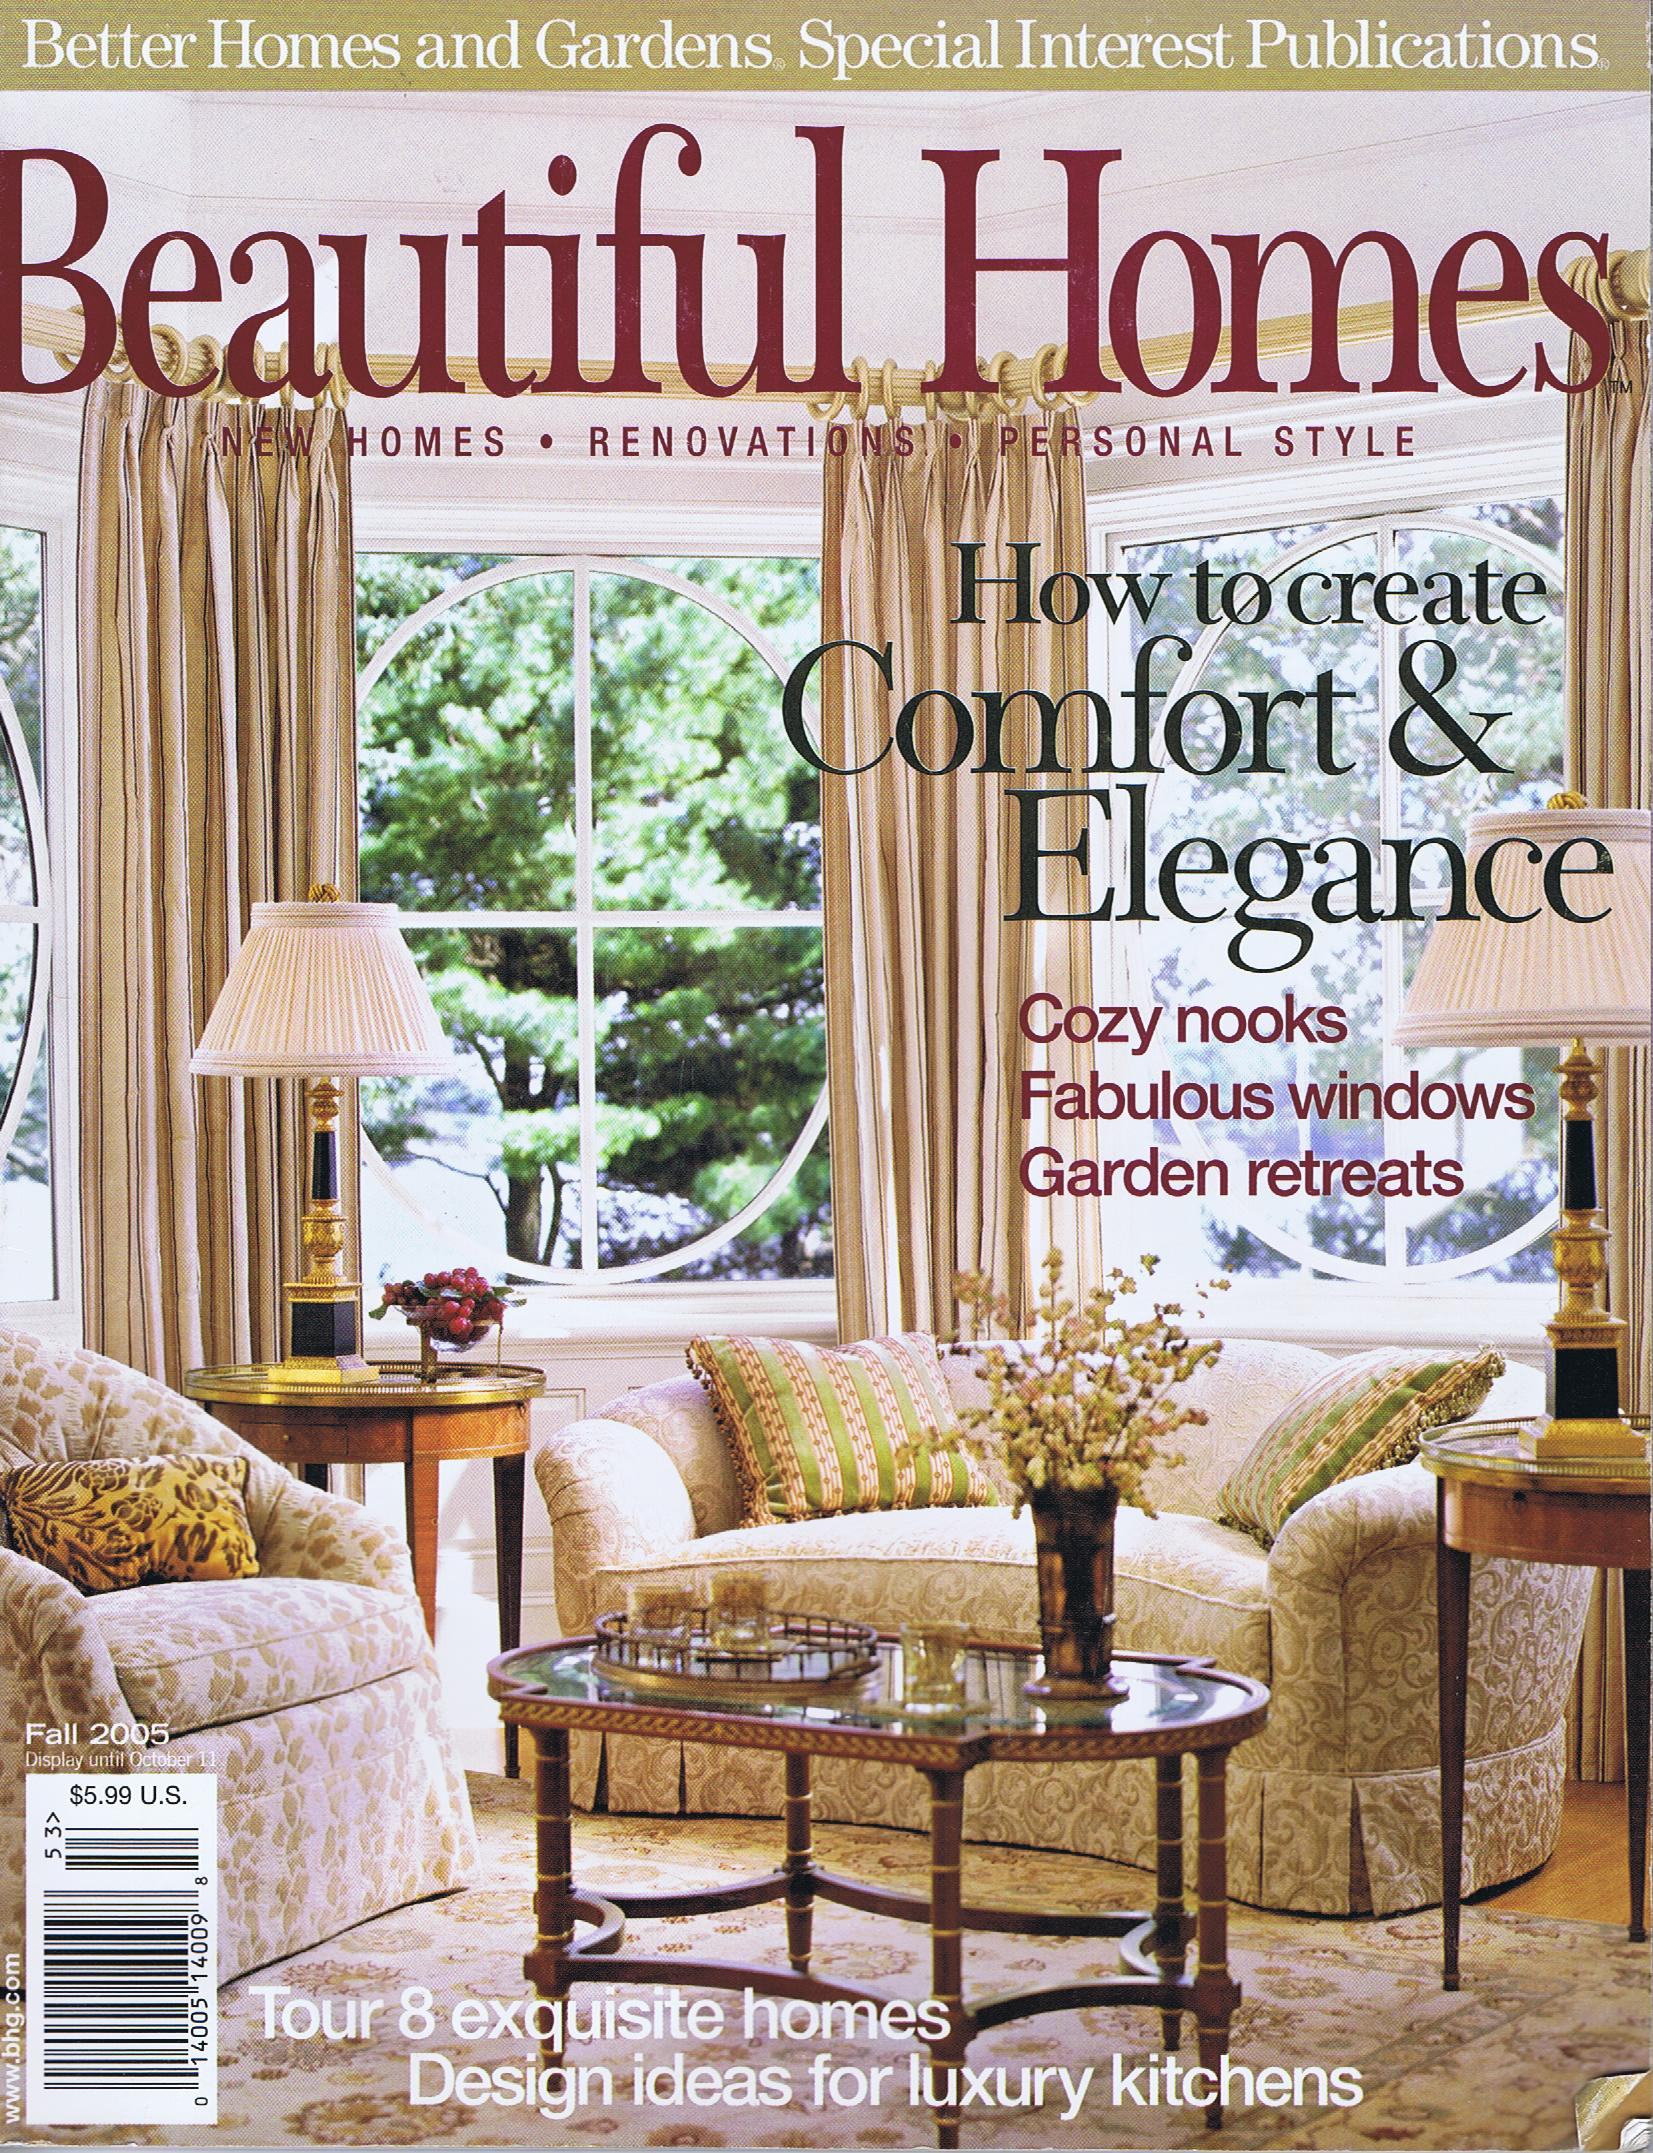 Beautiful Homes, Fall 2005